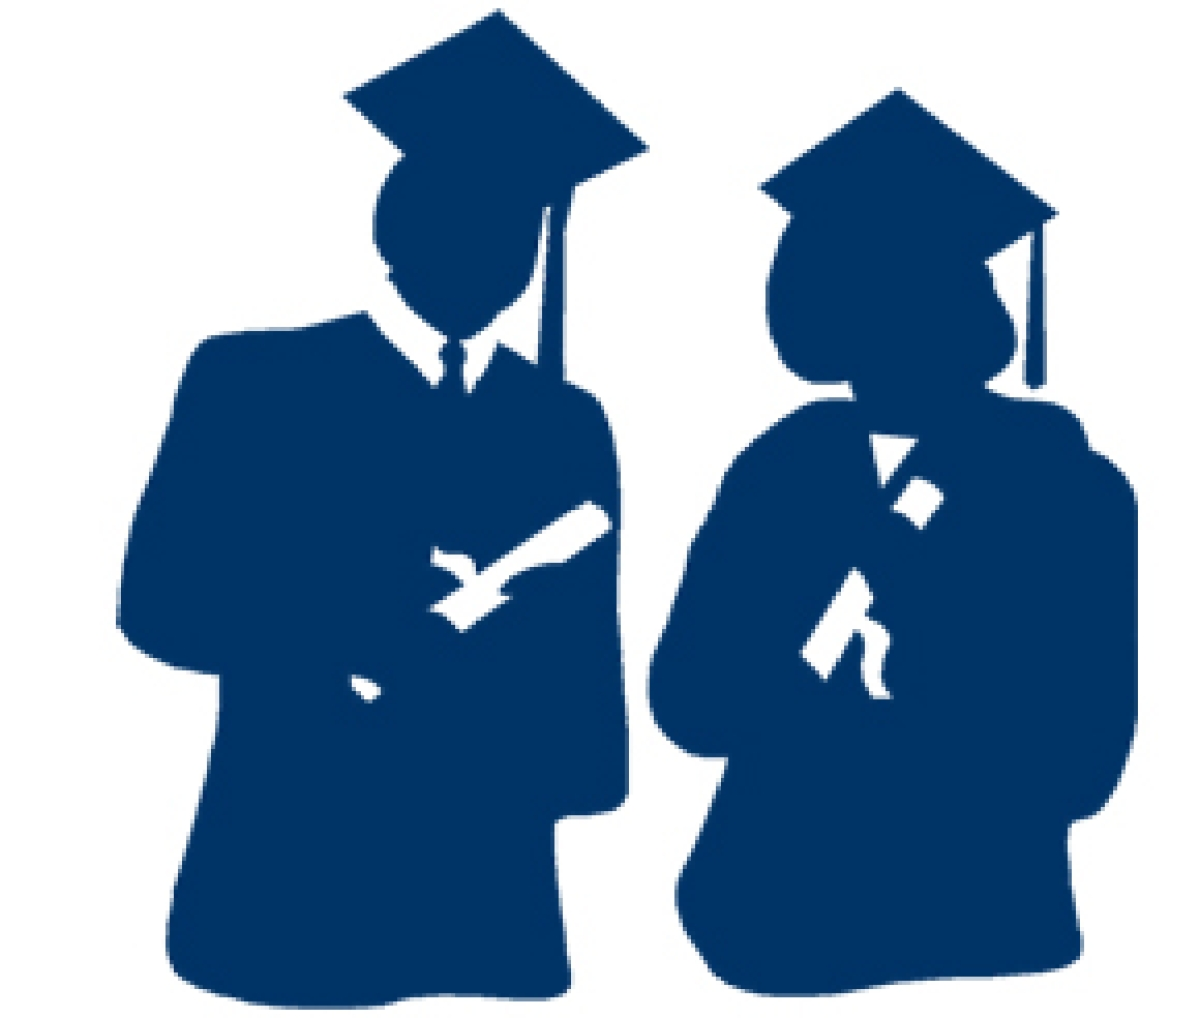 State of Legal Education: The Legal Profession and Legal Education in India